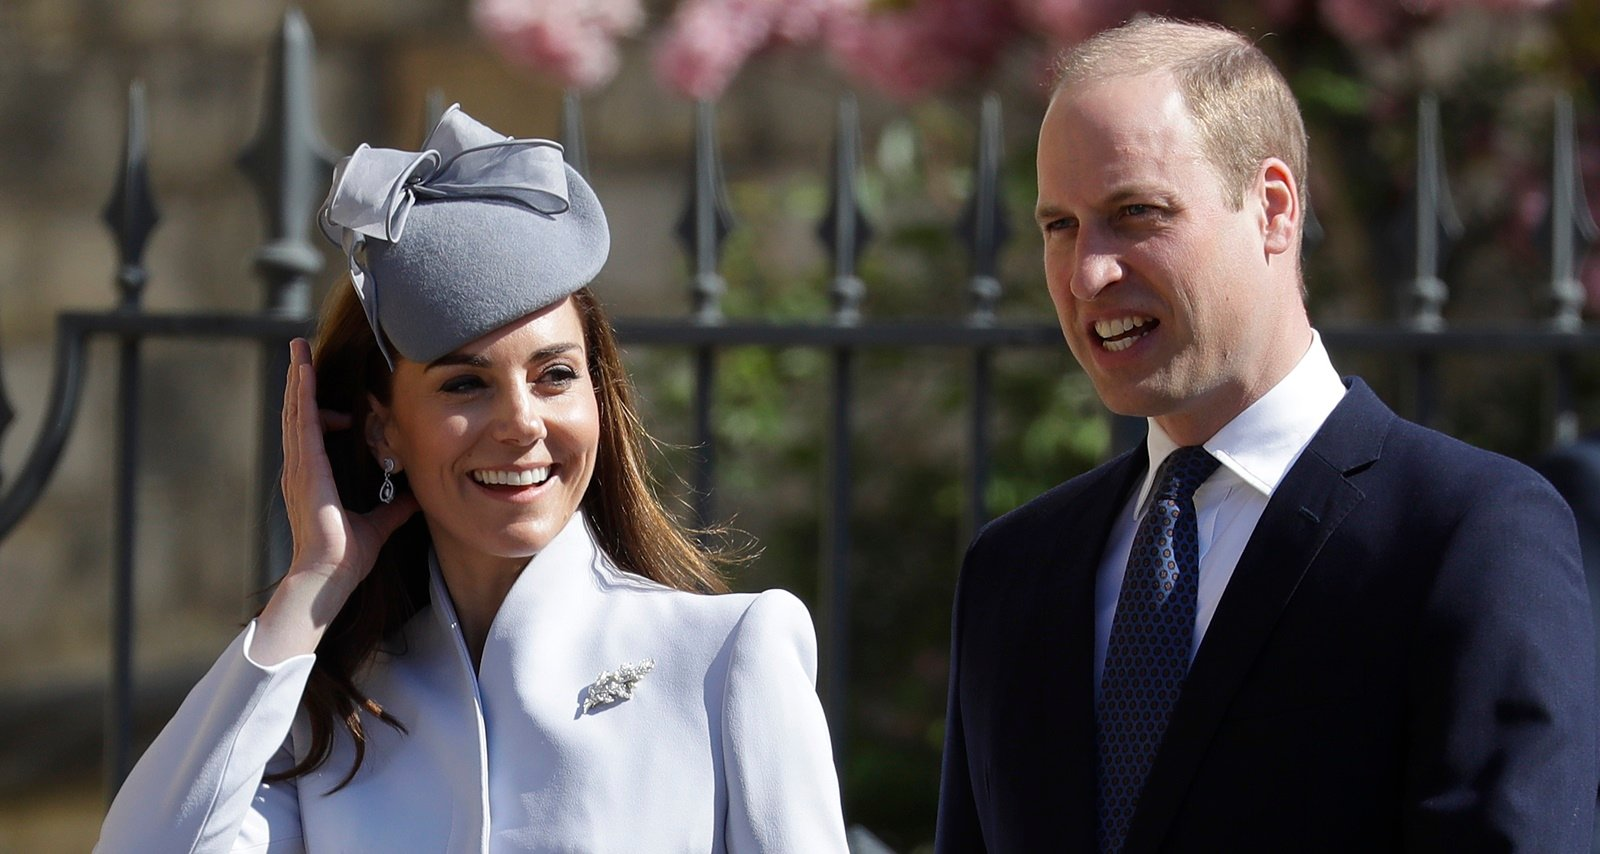 Is Prince William Cheating on Kate Middleton with friend Rose Hanbury